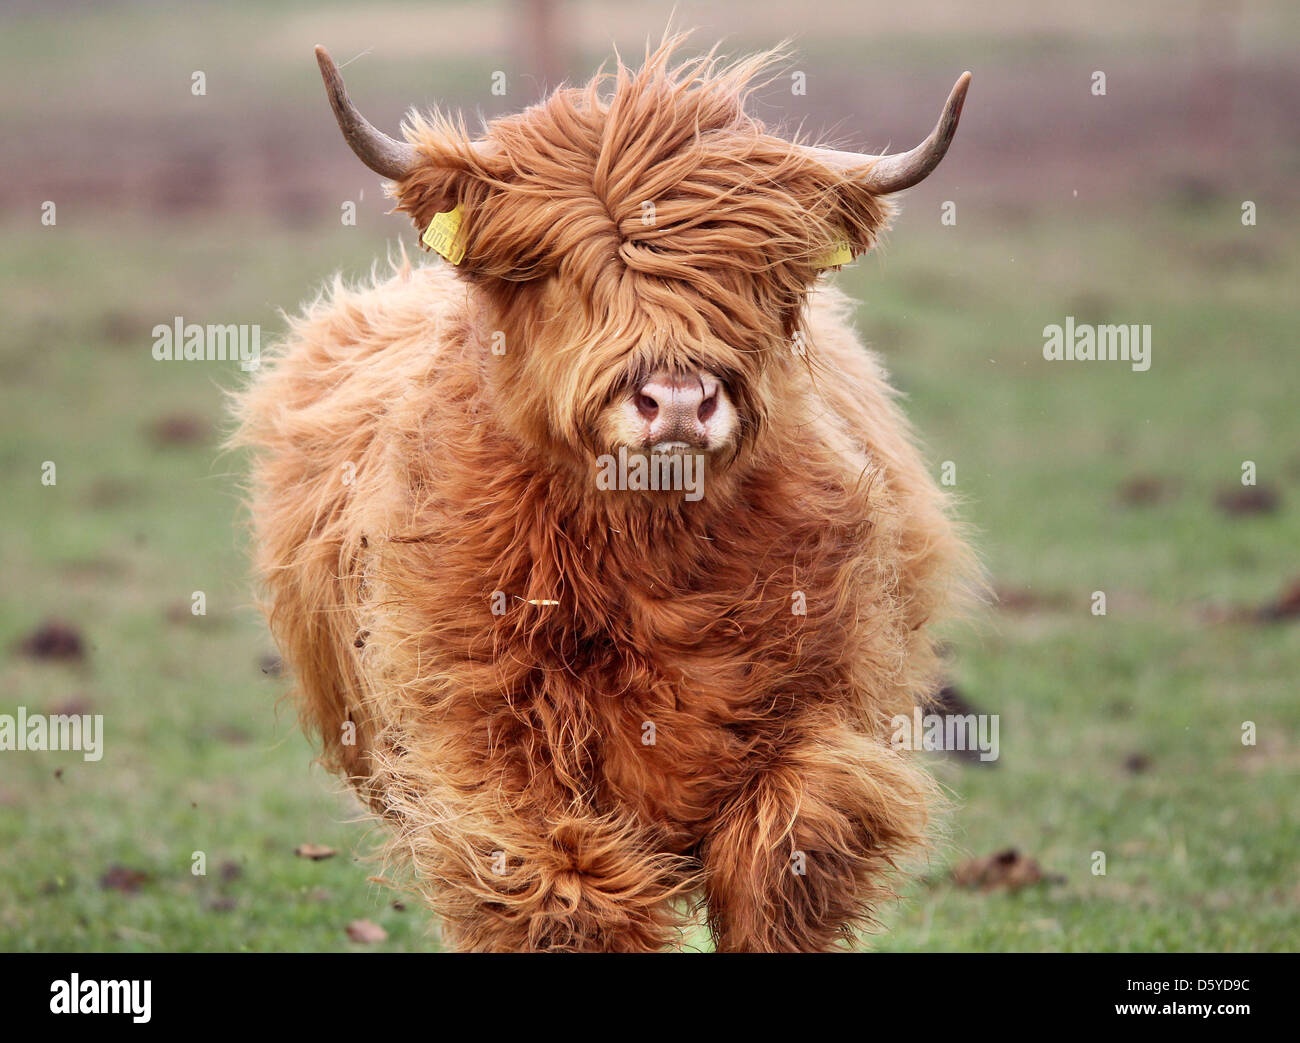 A Scottish Highland Cattle stands on a pasture near Grossenhain, Germany, 04 April 2012. The robust yet good-natured - Stock Image